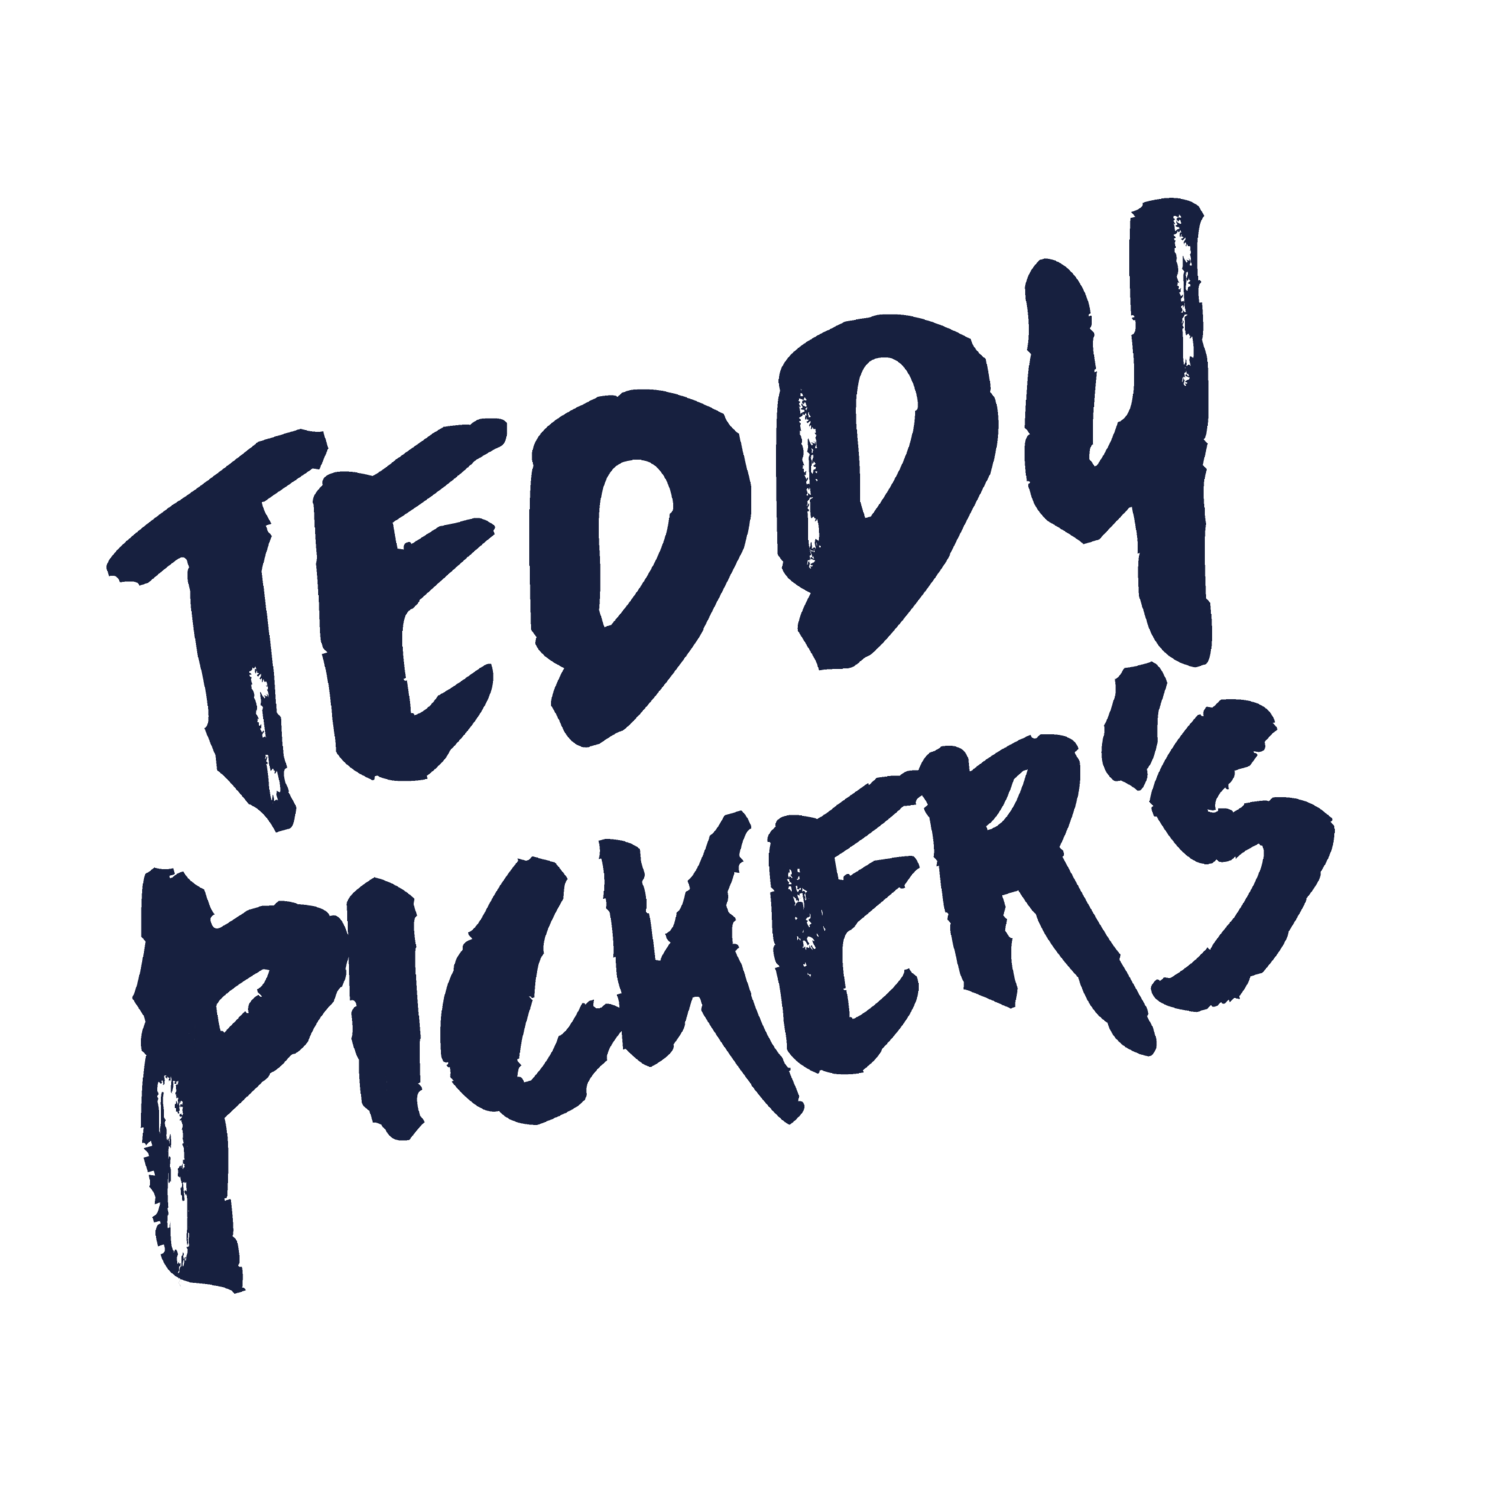 Teddy Picker's